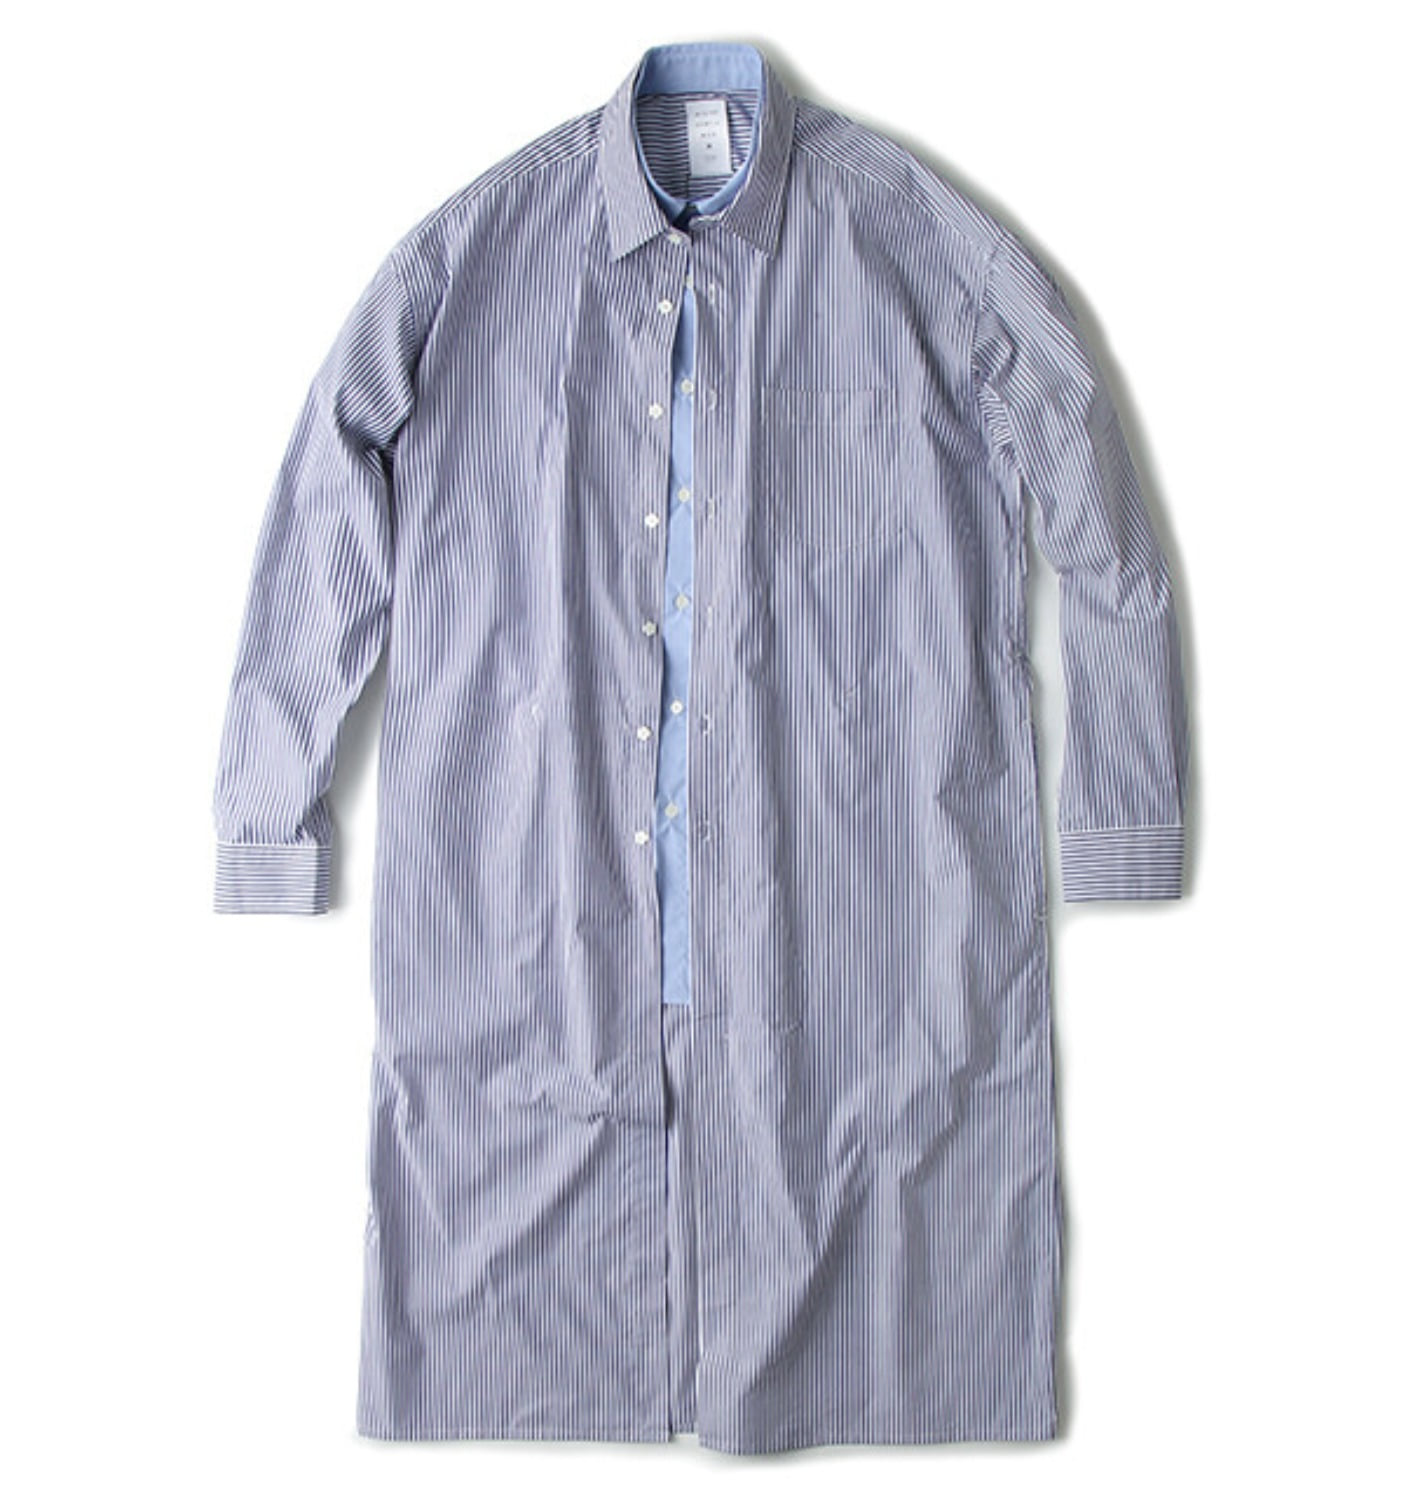 DOUBLE FRONT LONG SHIRT BLUE STRIPE(MGM-SH16)